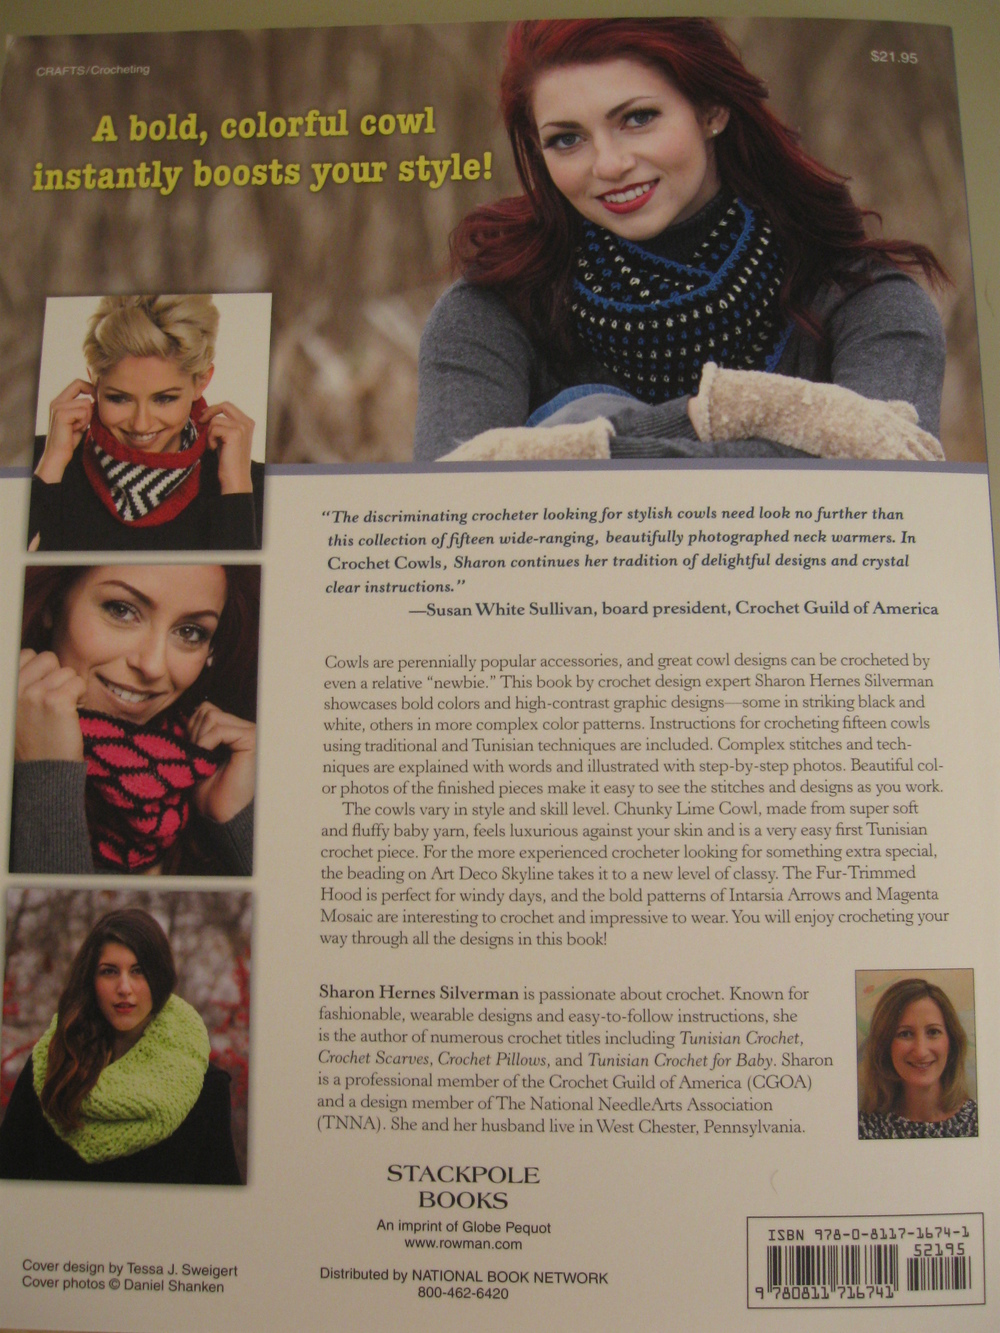 The back cover. Thanks to Susan White Sullivan for such a nice endorsement!